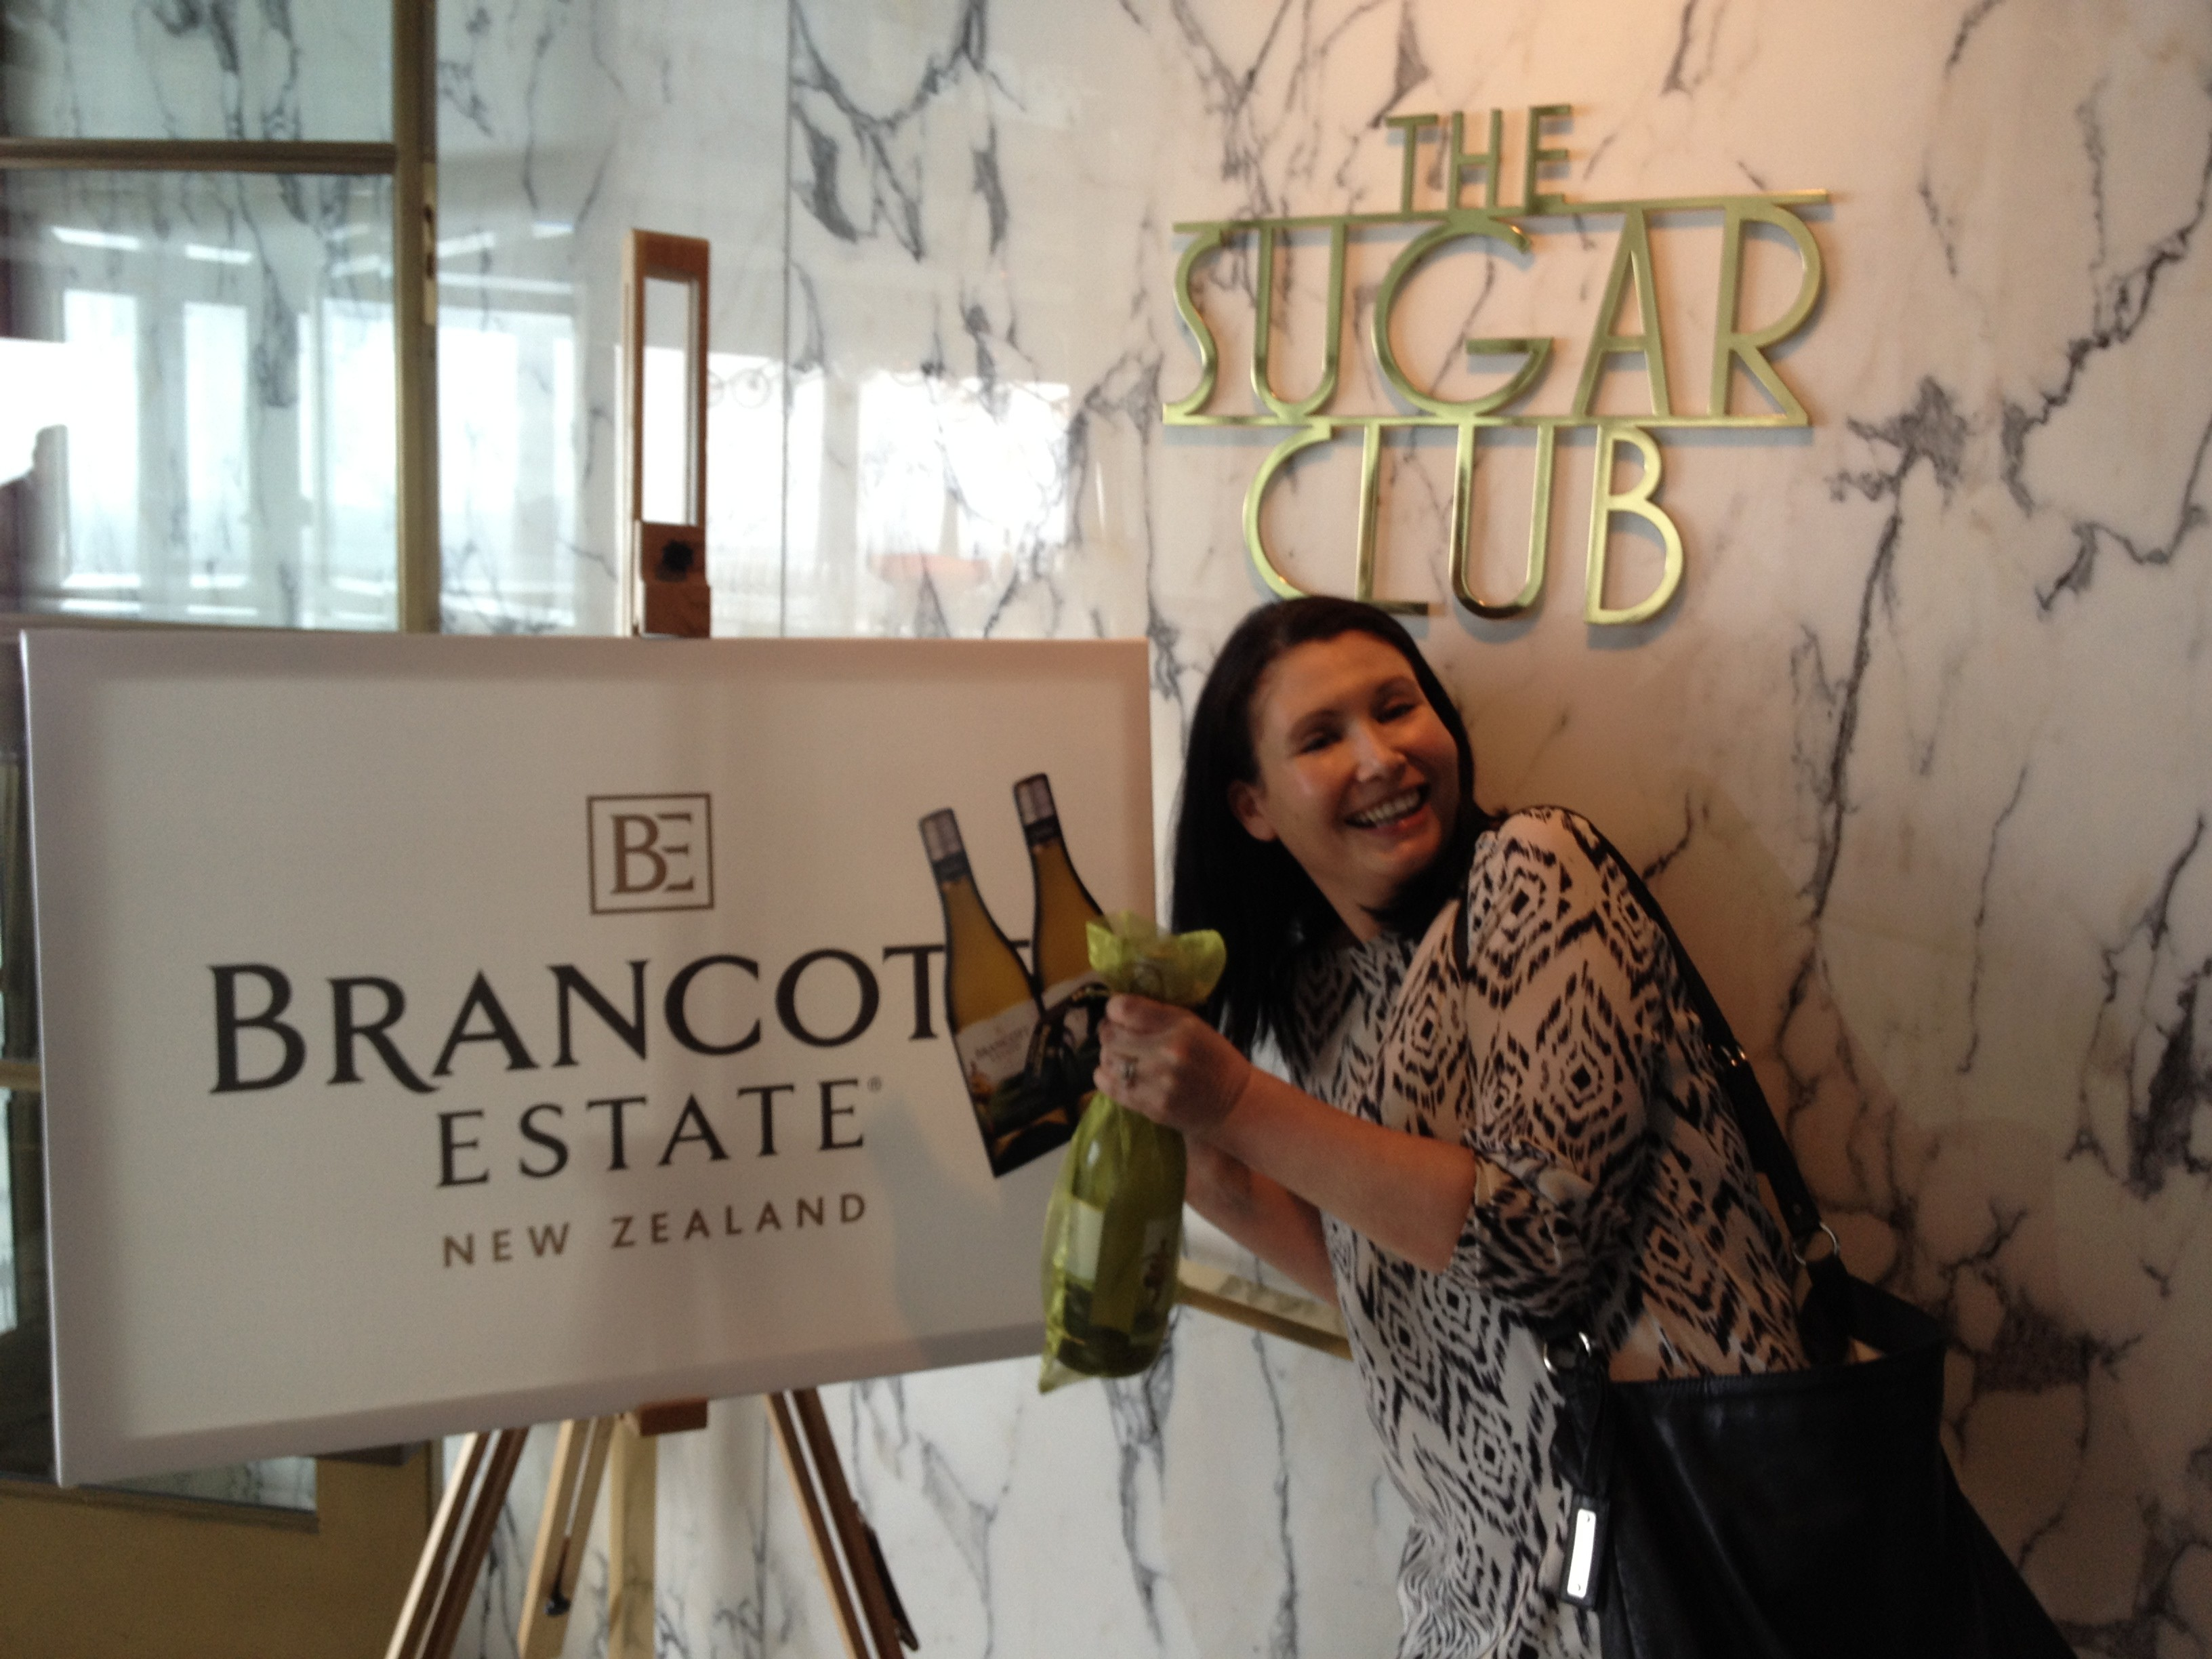 Brancott Estate, Patrick Materman, Cathy McKeown, The Sugar Club, Sky City, World of WearableArts, WOW, Media Lunch, fashion media nz, beauty media nz, beauty blog nz, fashion blog nz, style blog nz, media nz, angie fredatovich, gurlinterrupted